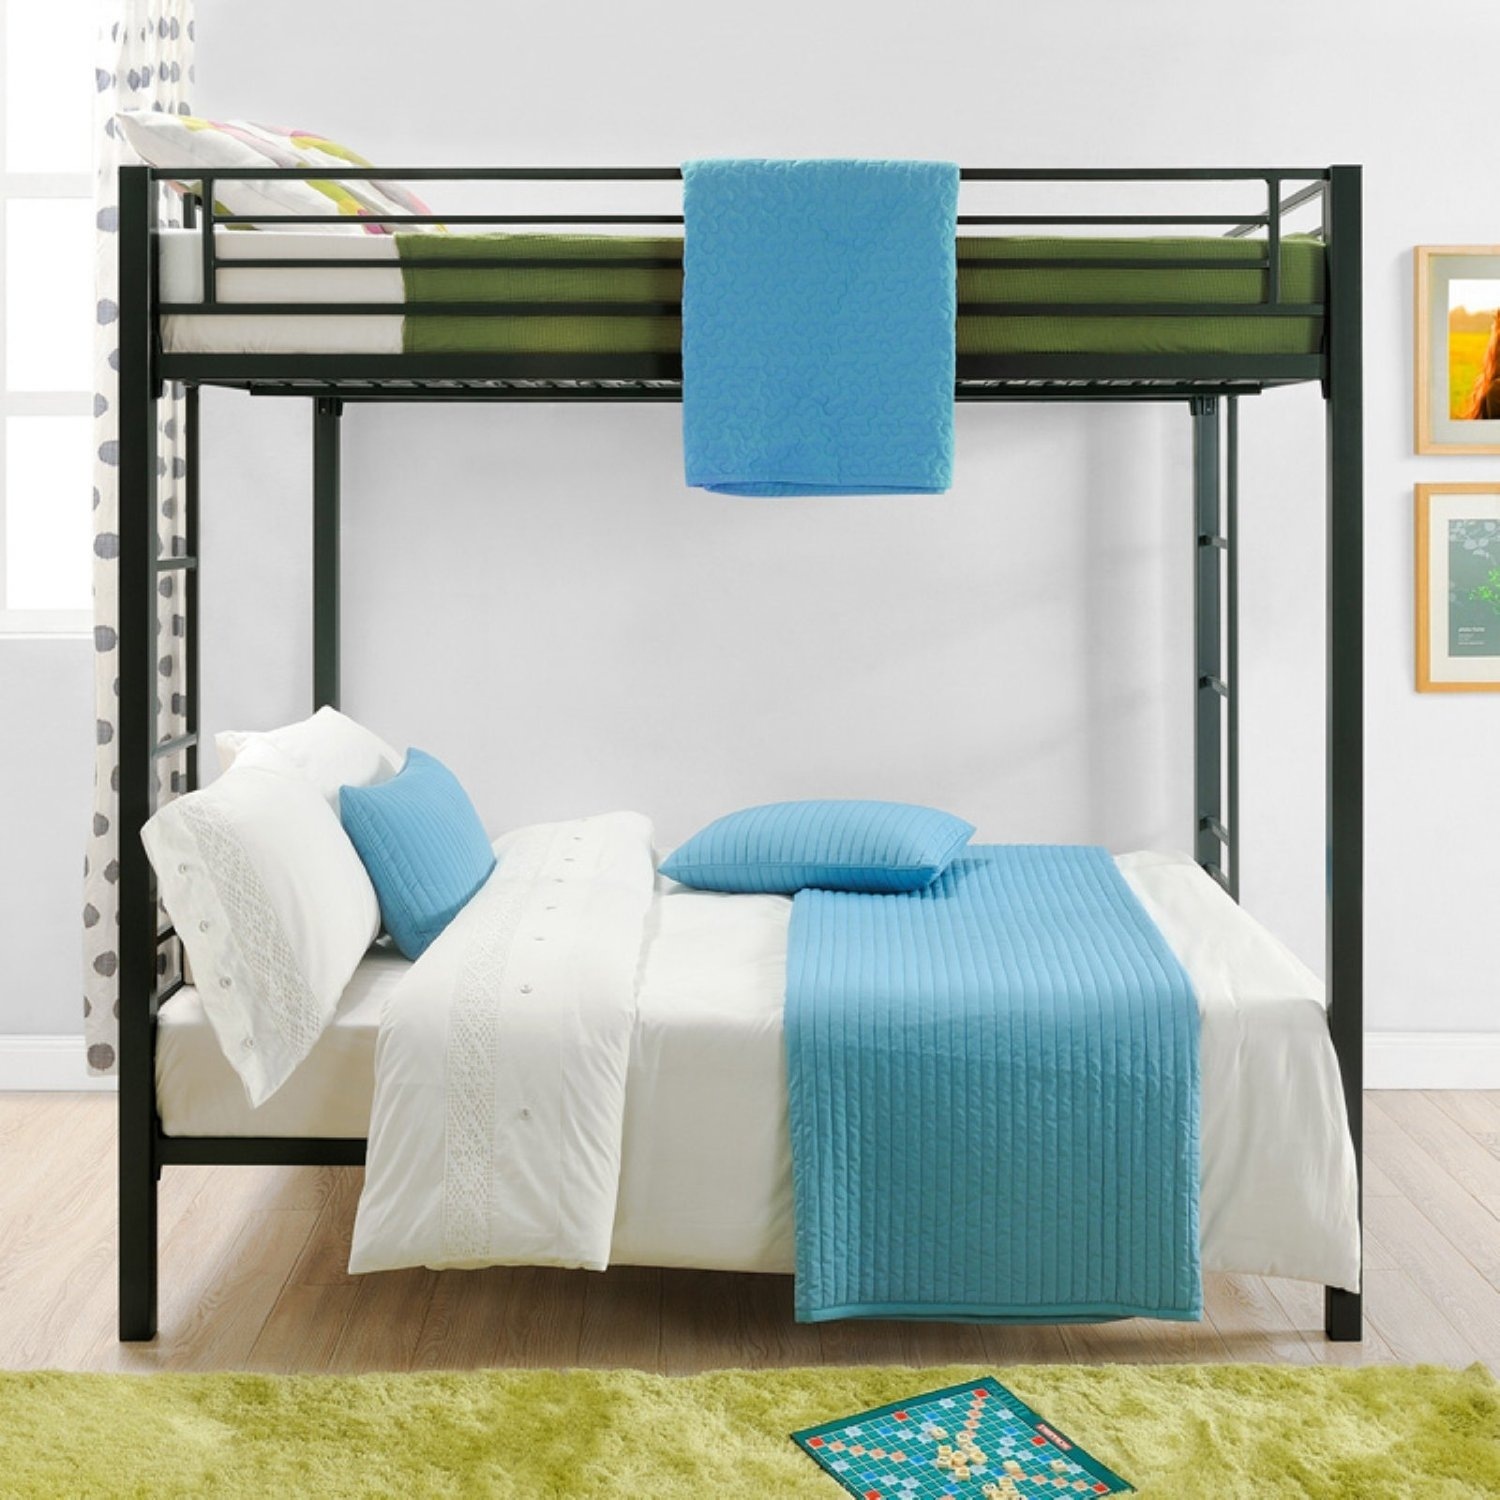 Full over Full size Sturdy Black Metal Bunk Bed, DFOFB22988 :  Complete your kid's room with this Full over Full size Sturdy Black Metal Bunk Bed. With square posts and simple design, this bunk bed will complement any room décor. The bunk bed includes metal slats for support and durability and can be used without a box spring or bunk board. It also includes full length guardrails for upper bunk and a sturdy integrated ladder for safety. Functional and space-saving, this Full-Over-Full Metal Bunk Bed is perfect for kids sharing a room or for sleepovers. Mattress support slats included, no box spring or bunk board required.